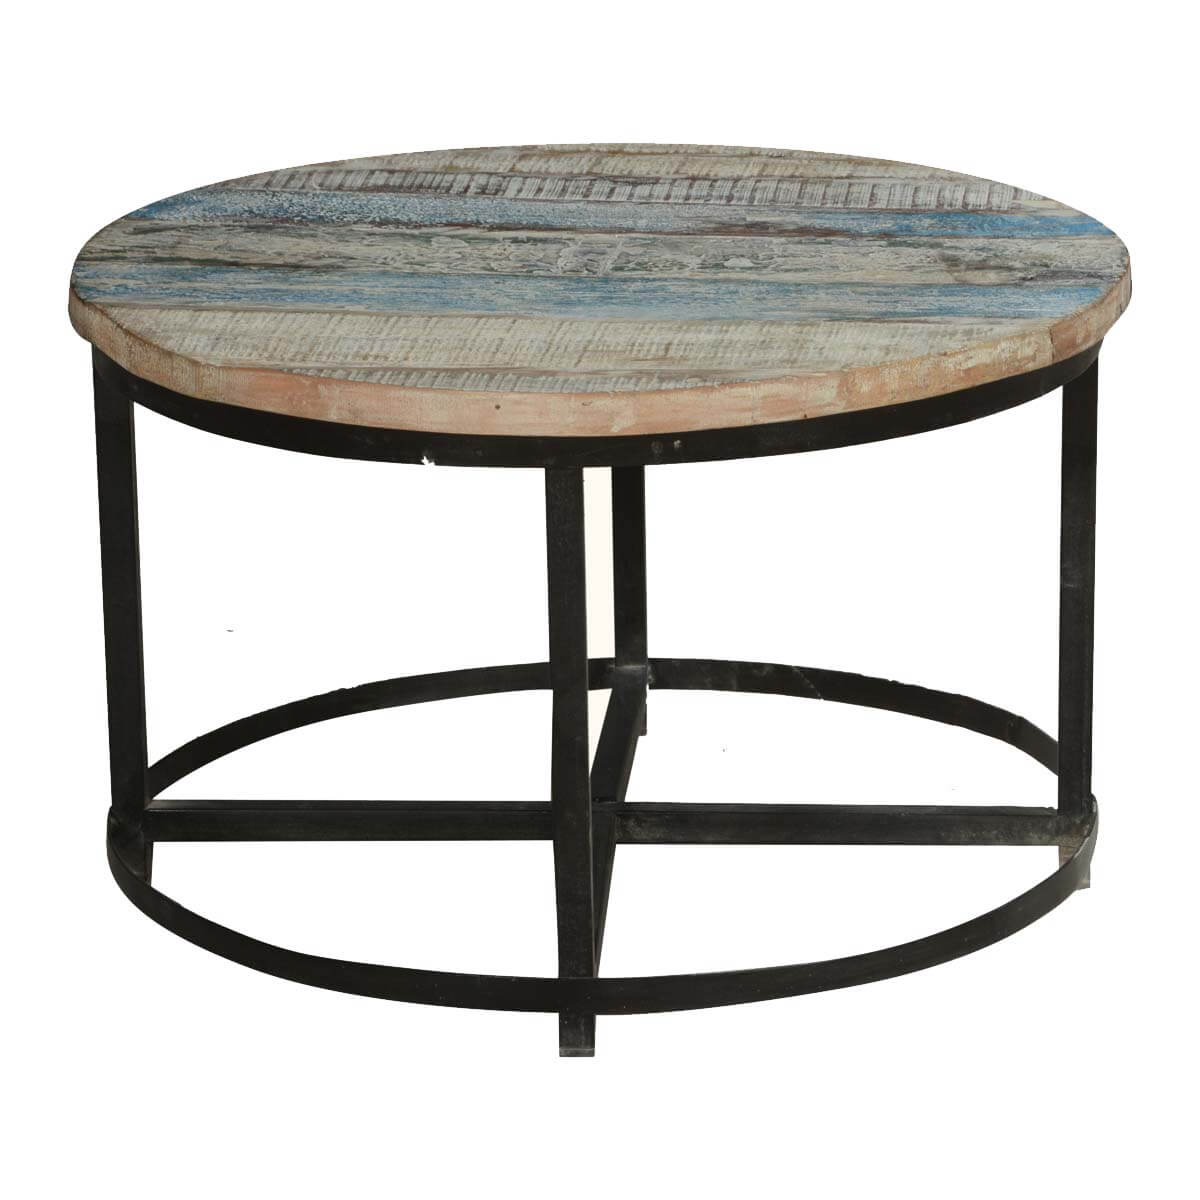 Round Industrial End Table Bithlo Reclaimed Wood Top Round Industrial Coffee Table